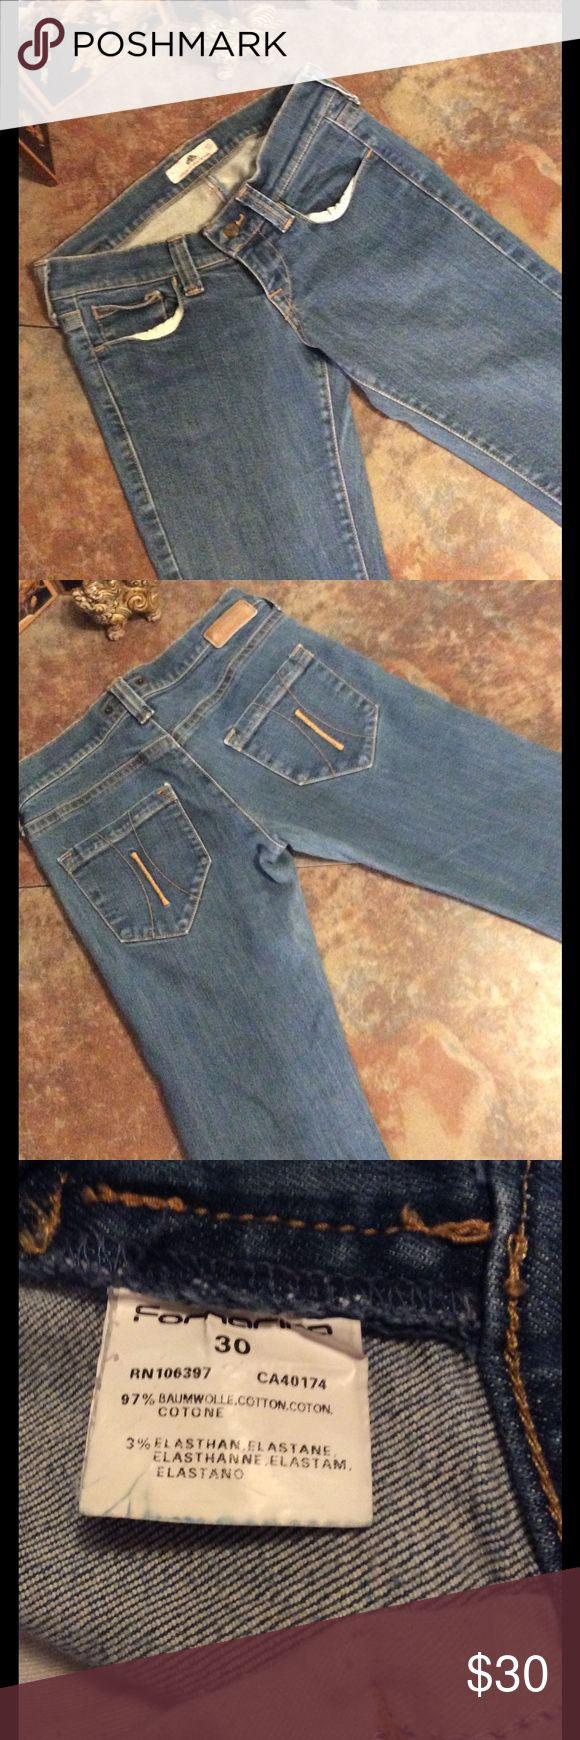 """Fornarina $15 when you bundle 3 pairs of jeans The fit on these is awesome the denim is so soft and stretchy beautiful jeans 6"""" rise 30"""" inseam Fornarina Jeans Straight Leg"""